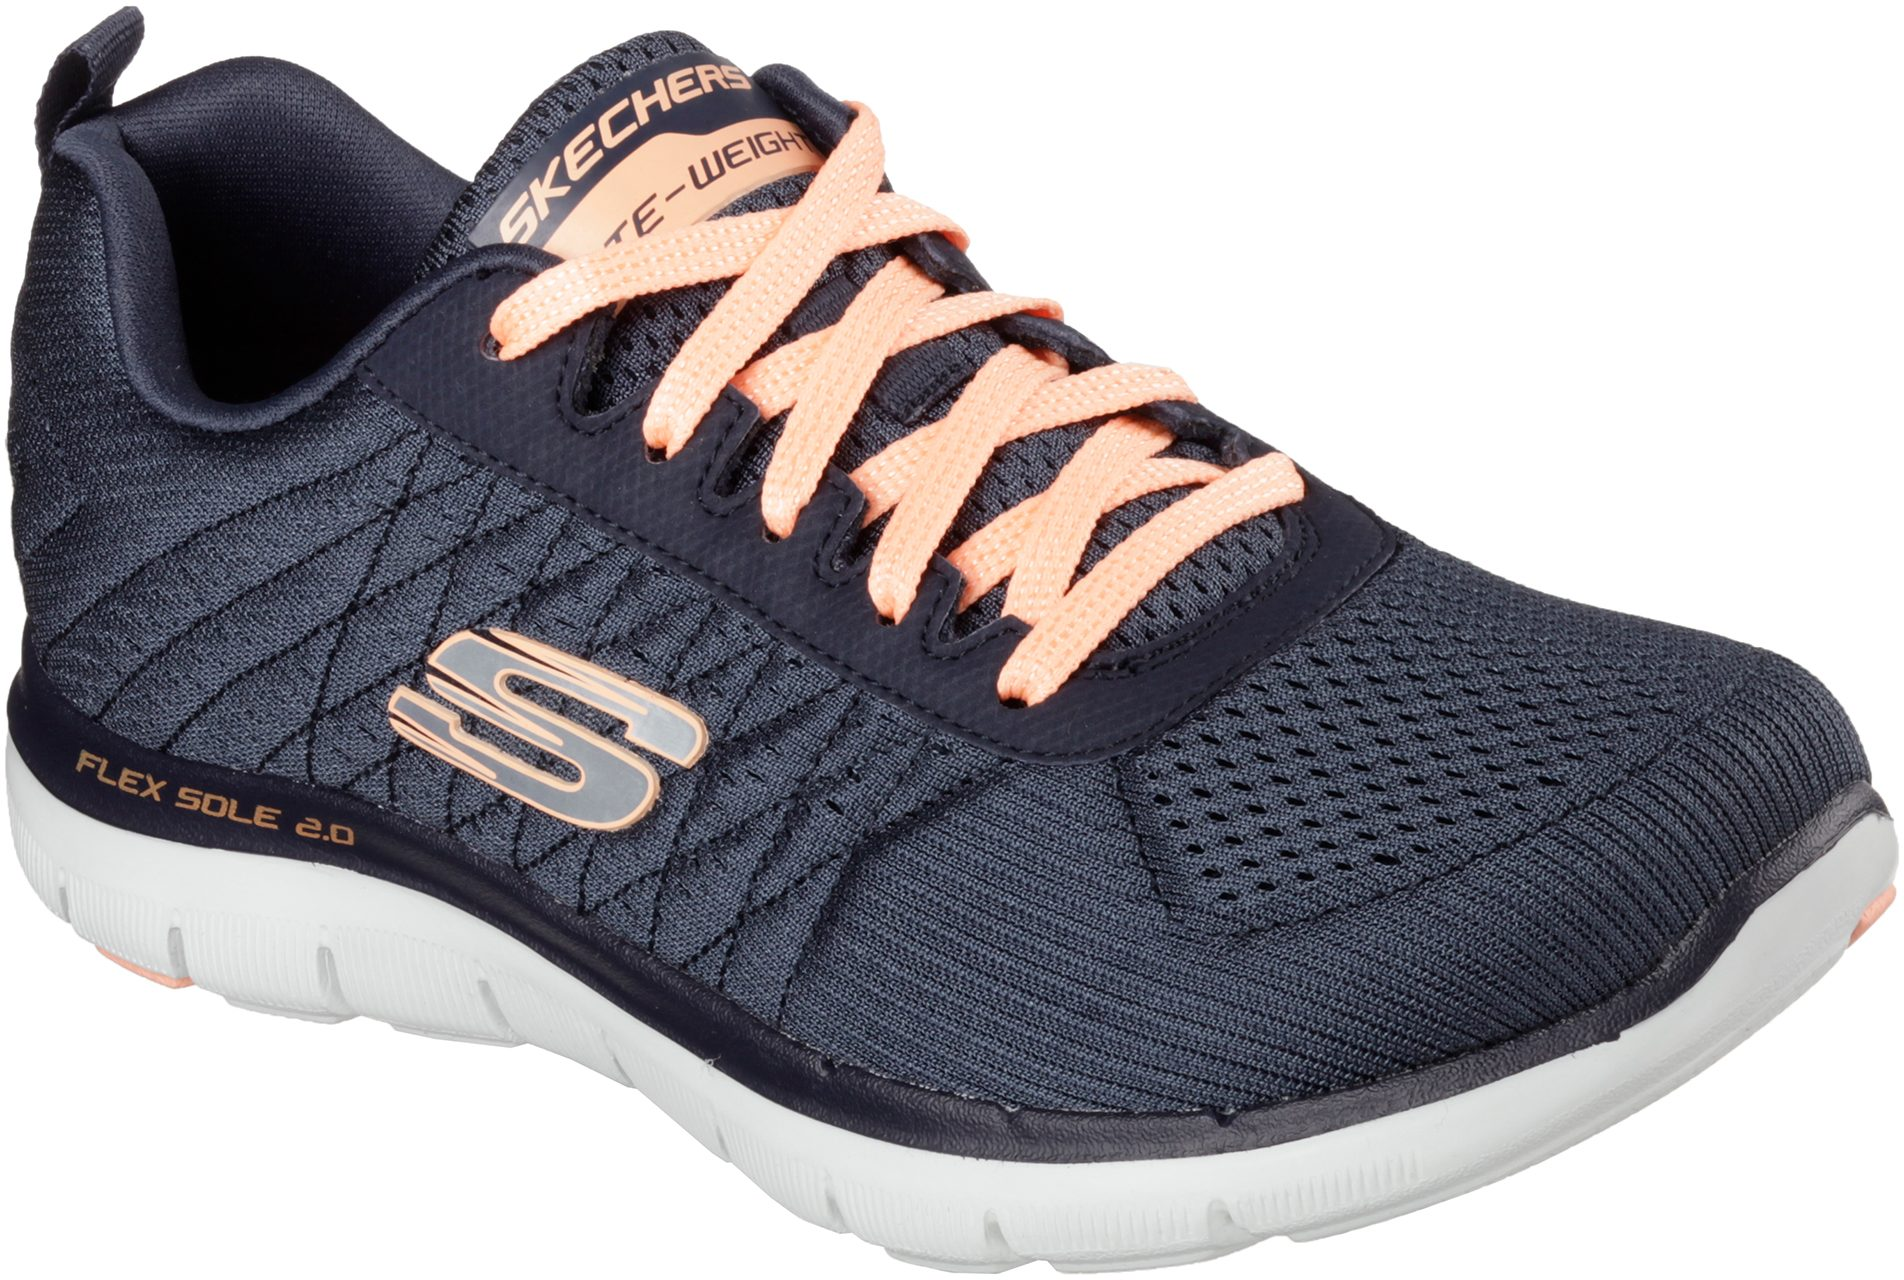 1f4ce2e311b7 Skechers Flex Appeal 2.0 - Break Free Charcoal 12757 CHAR - Womens Trainers  - Humphries Shoes